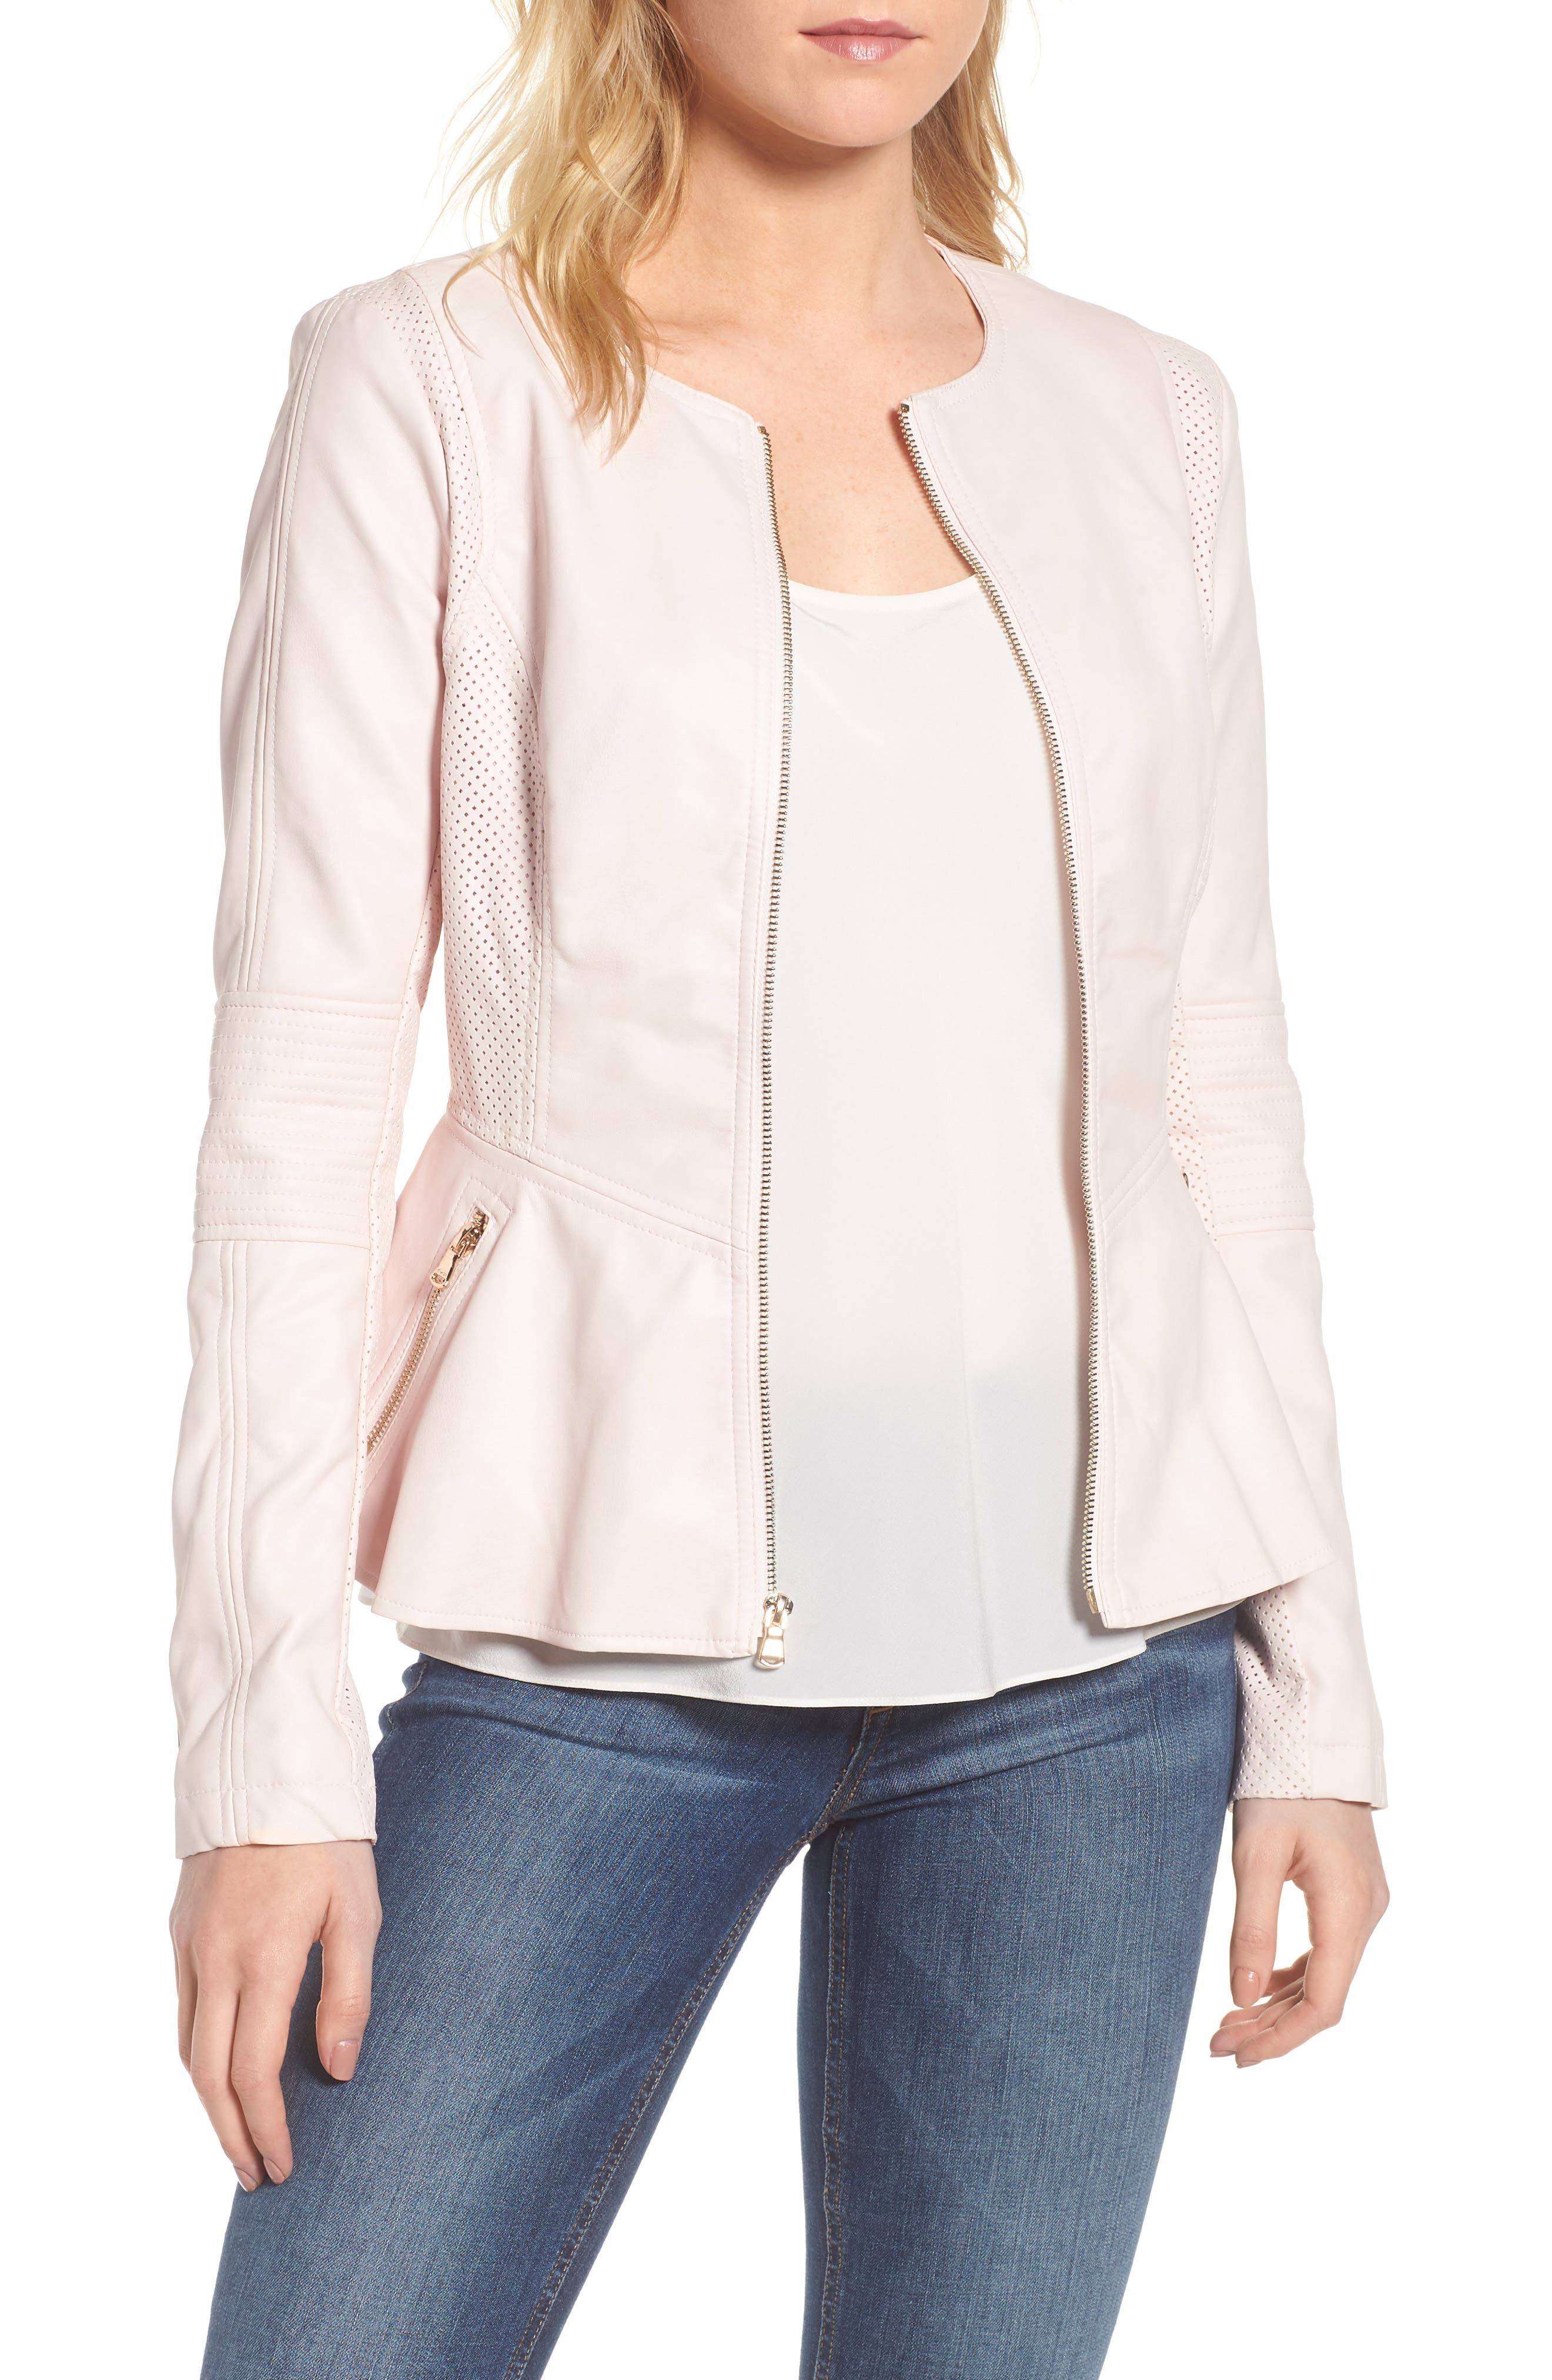 Main Image - GUESS Perforated Peplum Hem Faux Leather Jacket